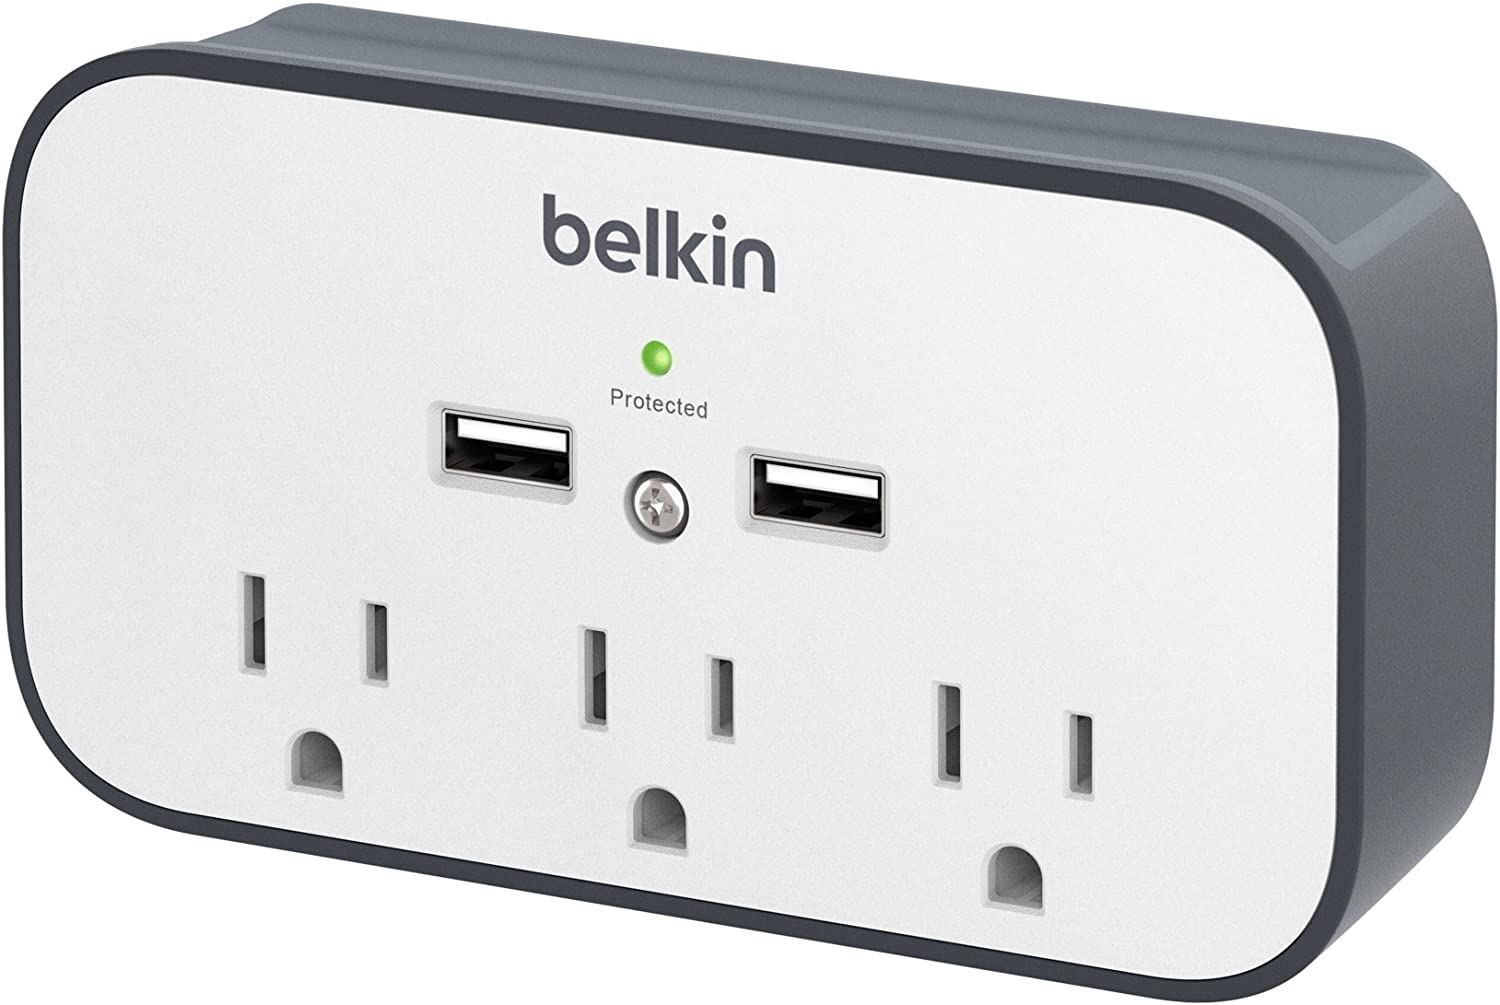 Belkin 3-Outlet Wall Mount Cradle Surge Protector with Dual USB Charging Ports (2.4 Amp Total)